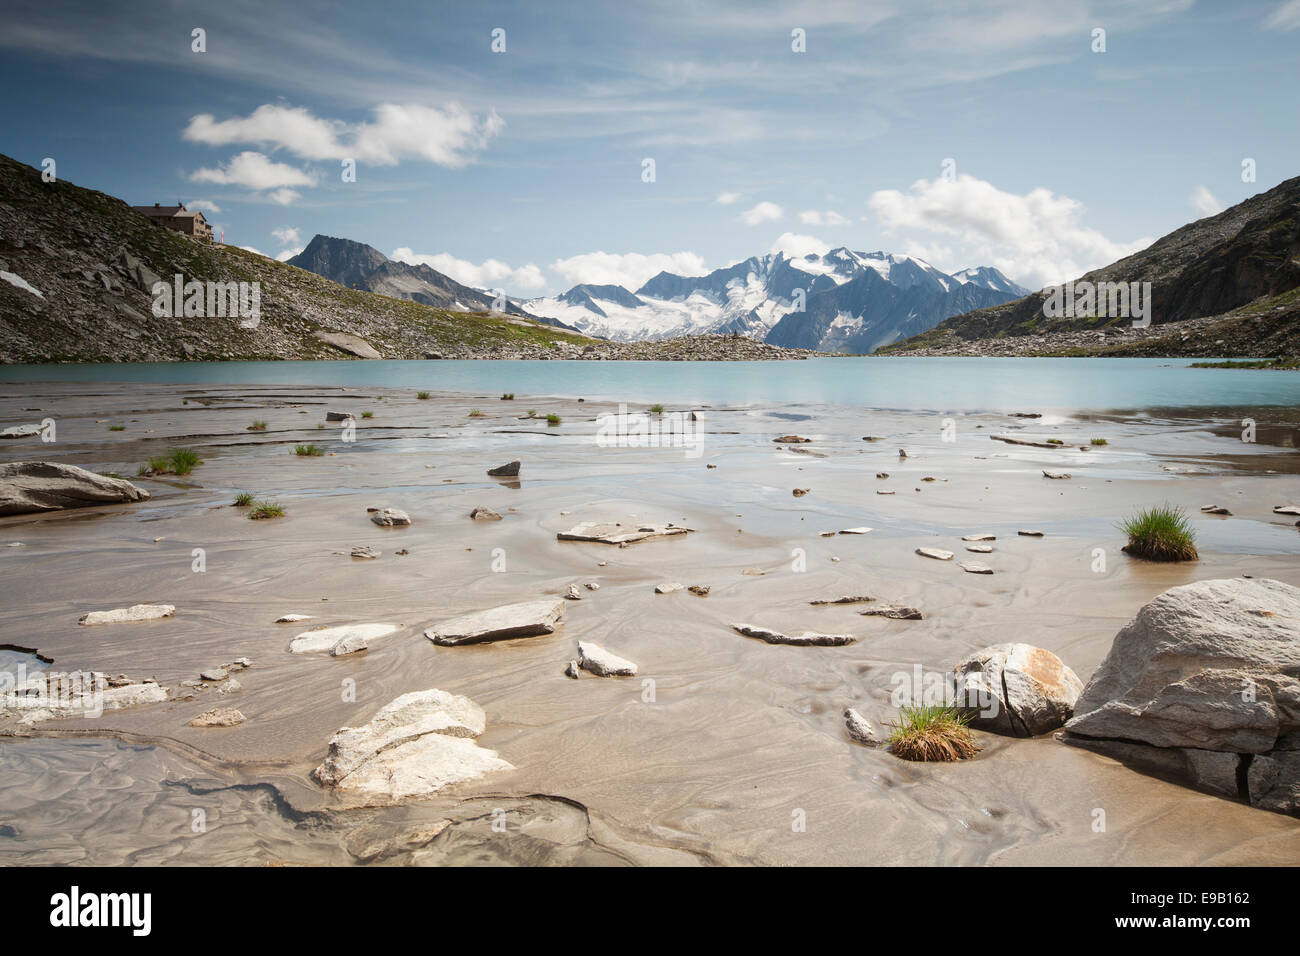 Friesenbergsee lake with views of the Zillertal Alps, Ginzling, Tyrol, Austria Stock Photo